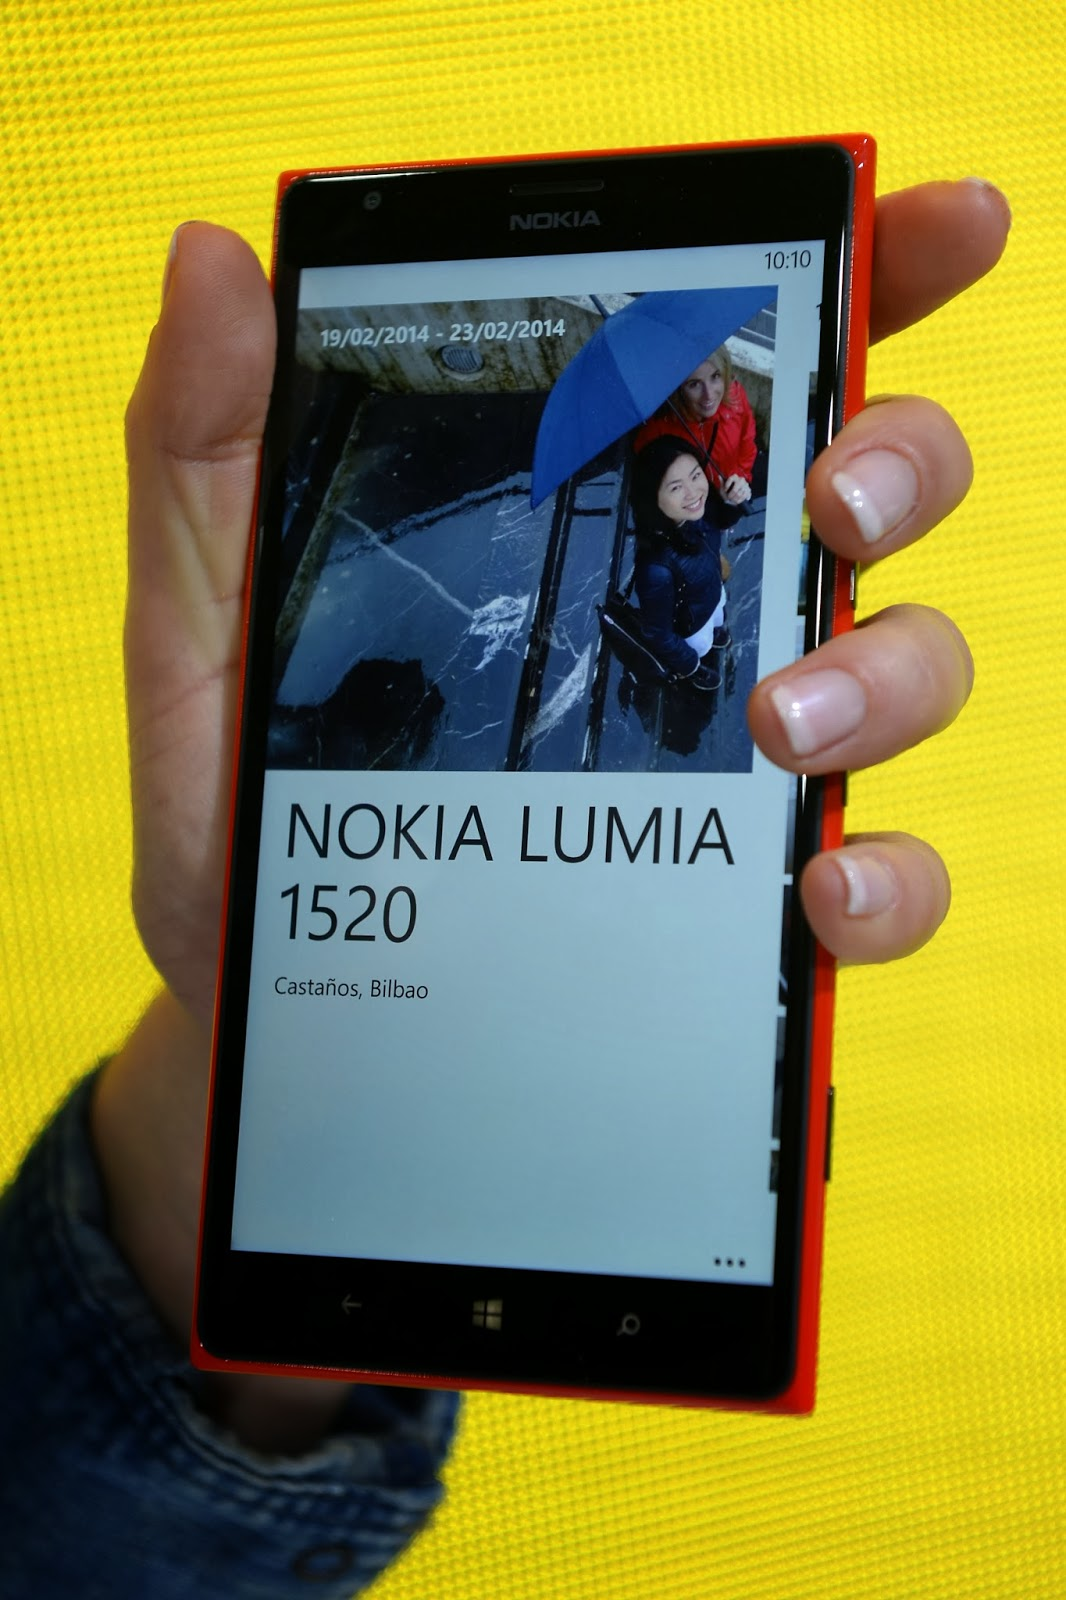 Android, Android smartphone, Barcelona, Business, CEO-Nokia, Economy, Electronics, Exhibition, Lumia 1520, Mobile, Mobile World Congress, Nokia, Nokia XL, Nokia XL features, Smartphones, Technology, Windroid, X series,